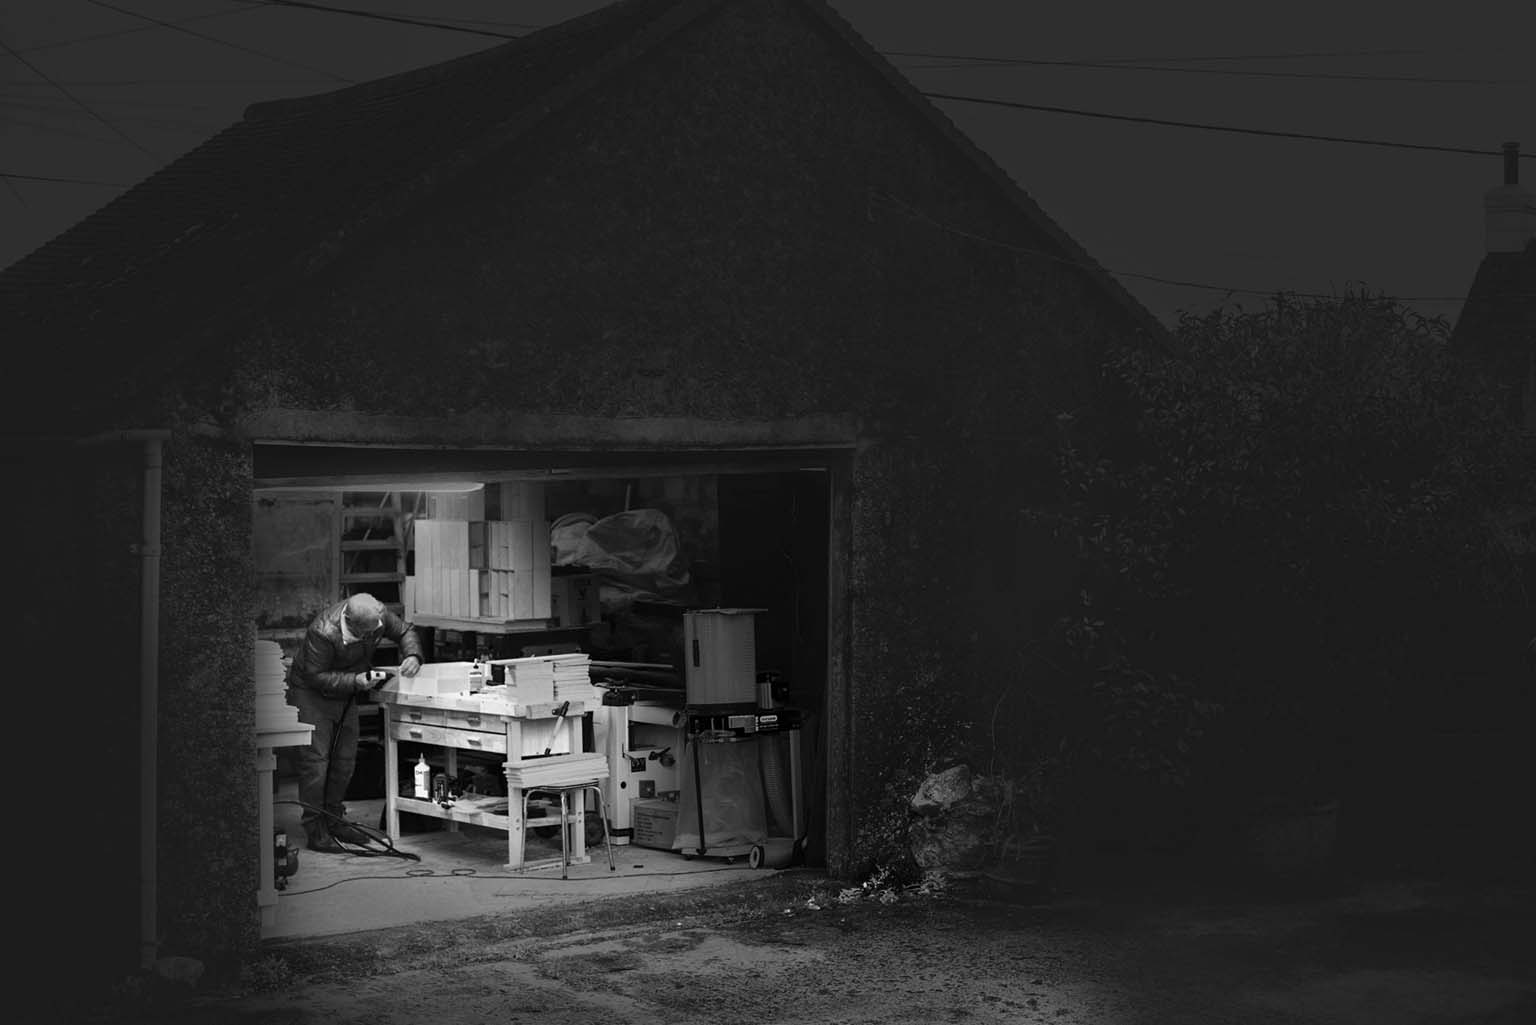 St Ives man in shed